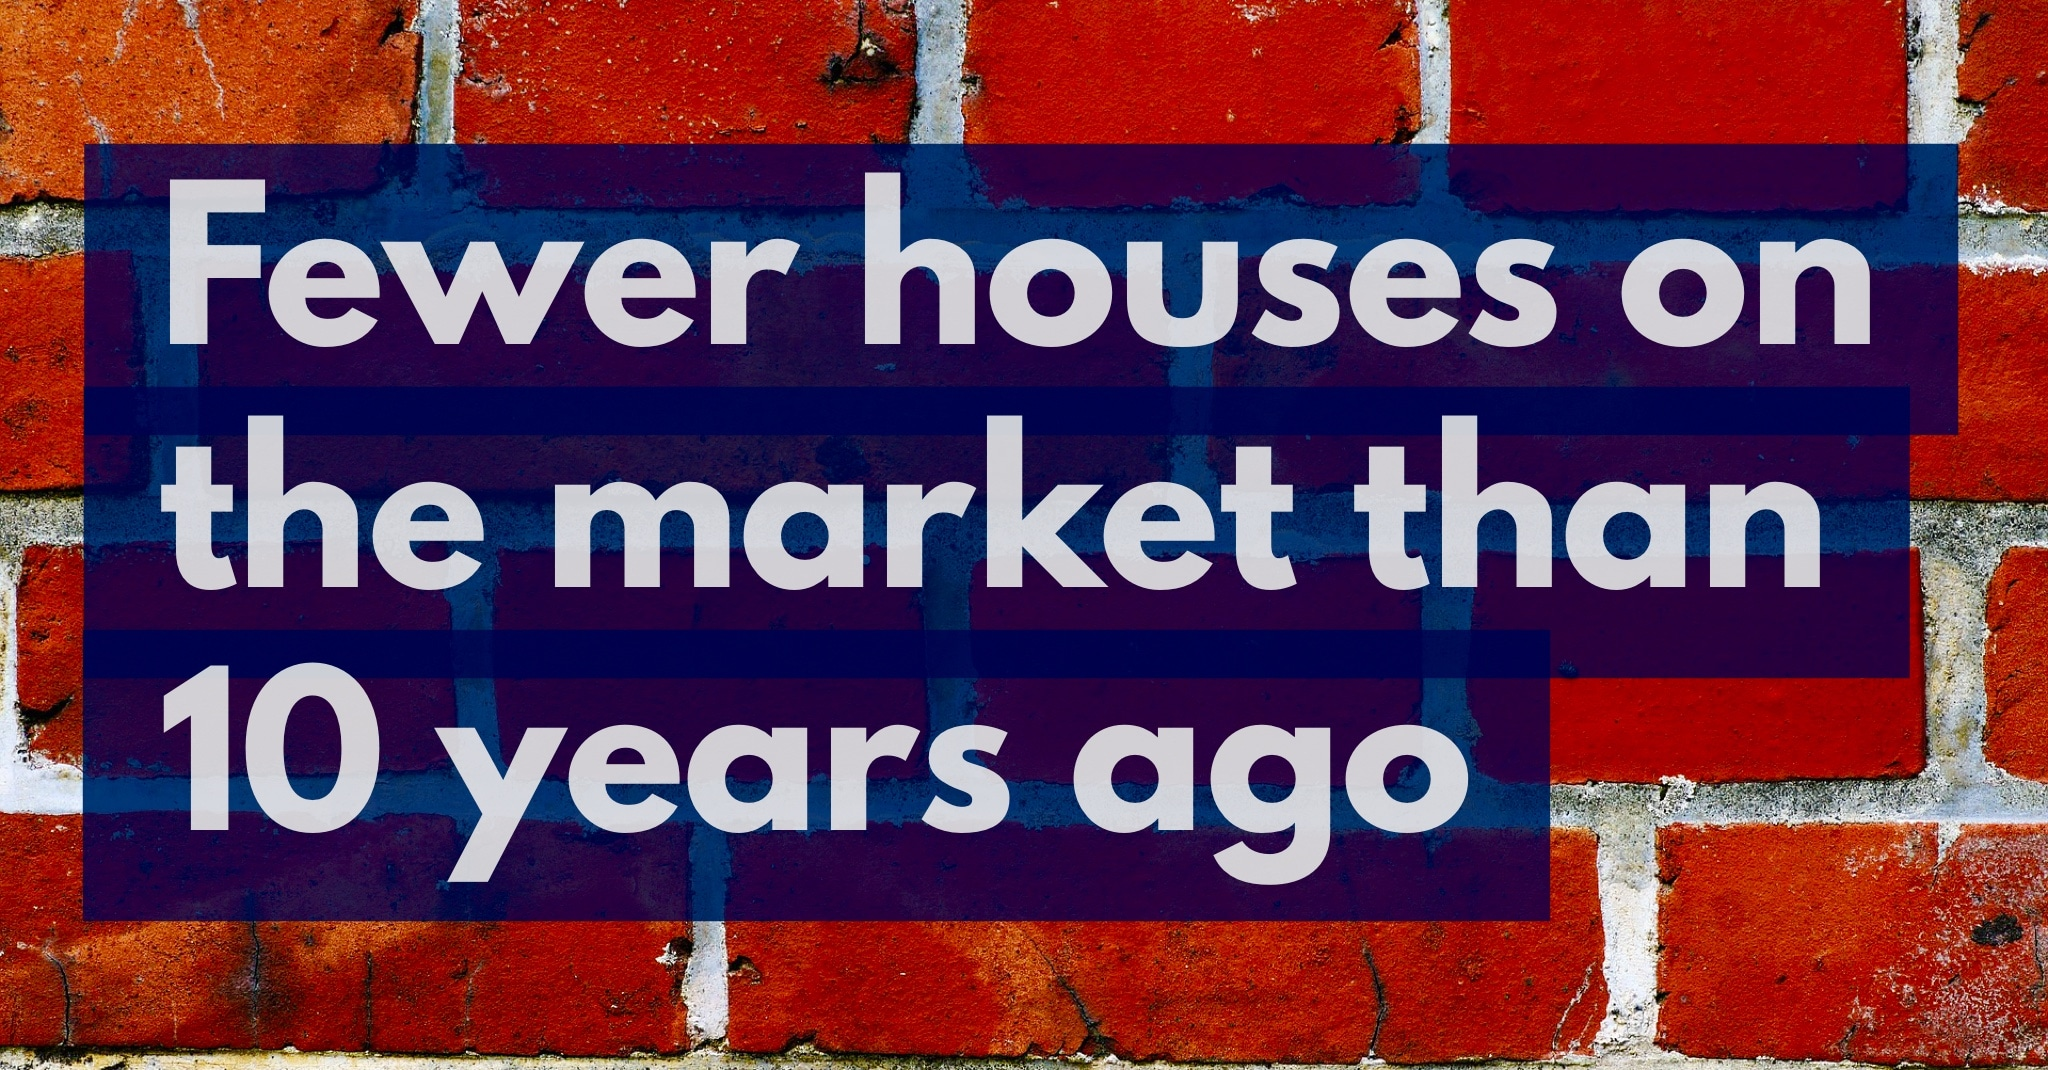 25% Drop in Properties For Sale Today in Canterbury Compared to 10 Years Ago